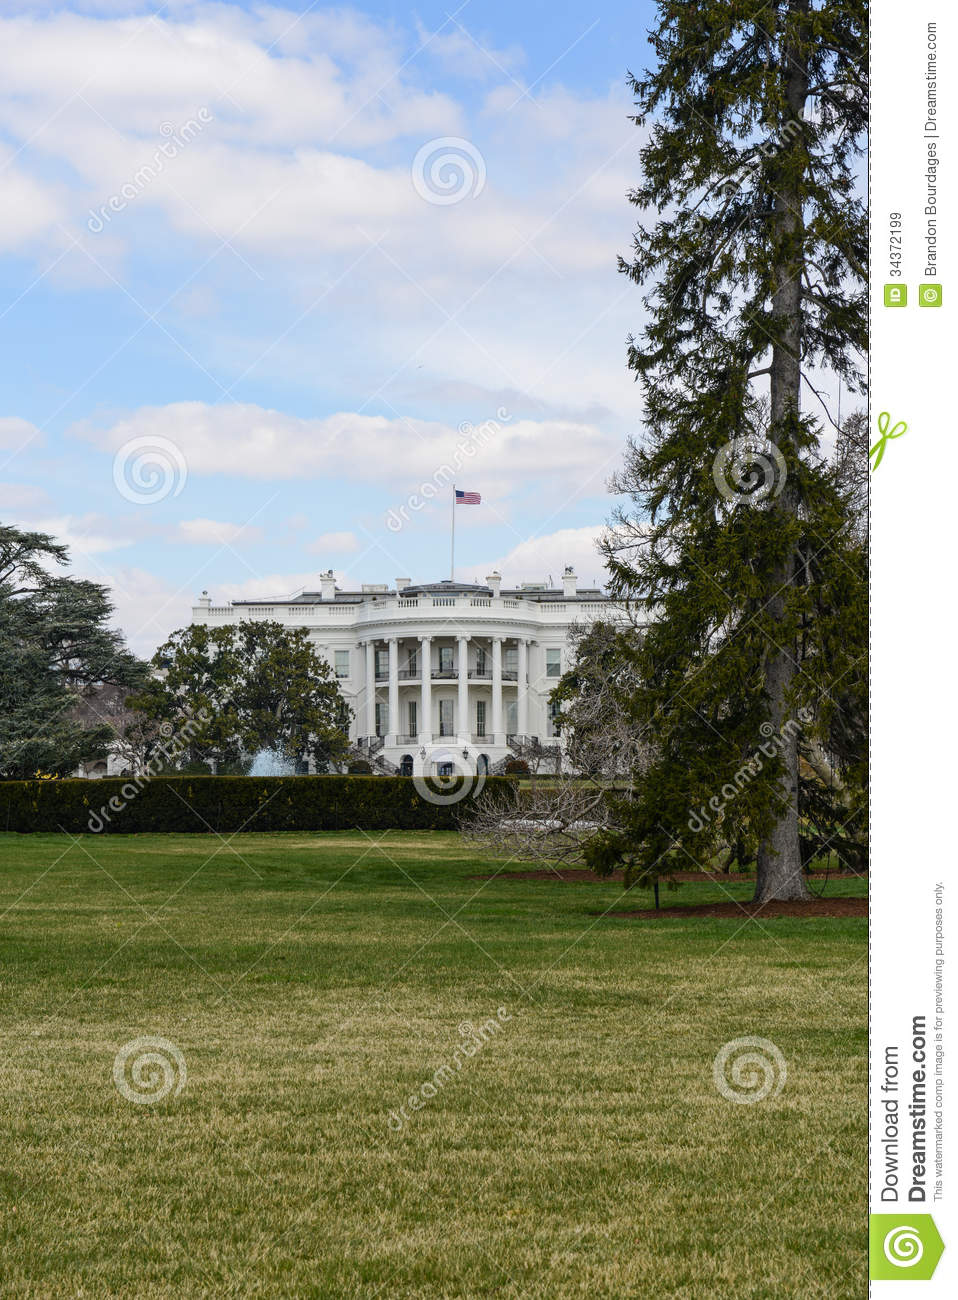 White house in washington dc royalty free stock images for Building a house in washington state